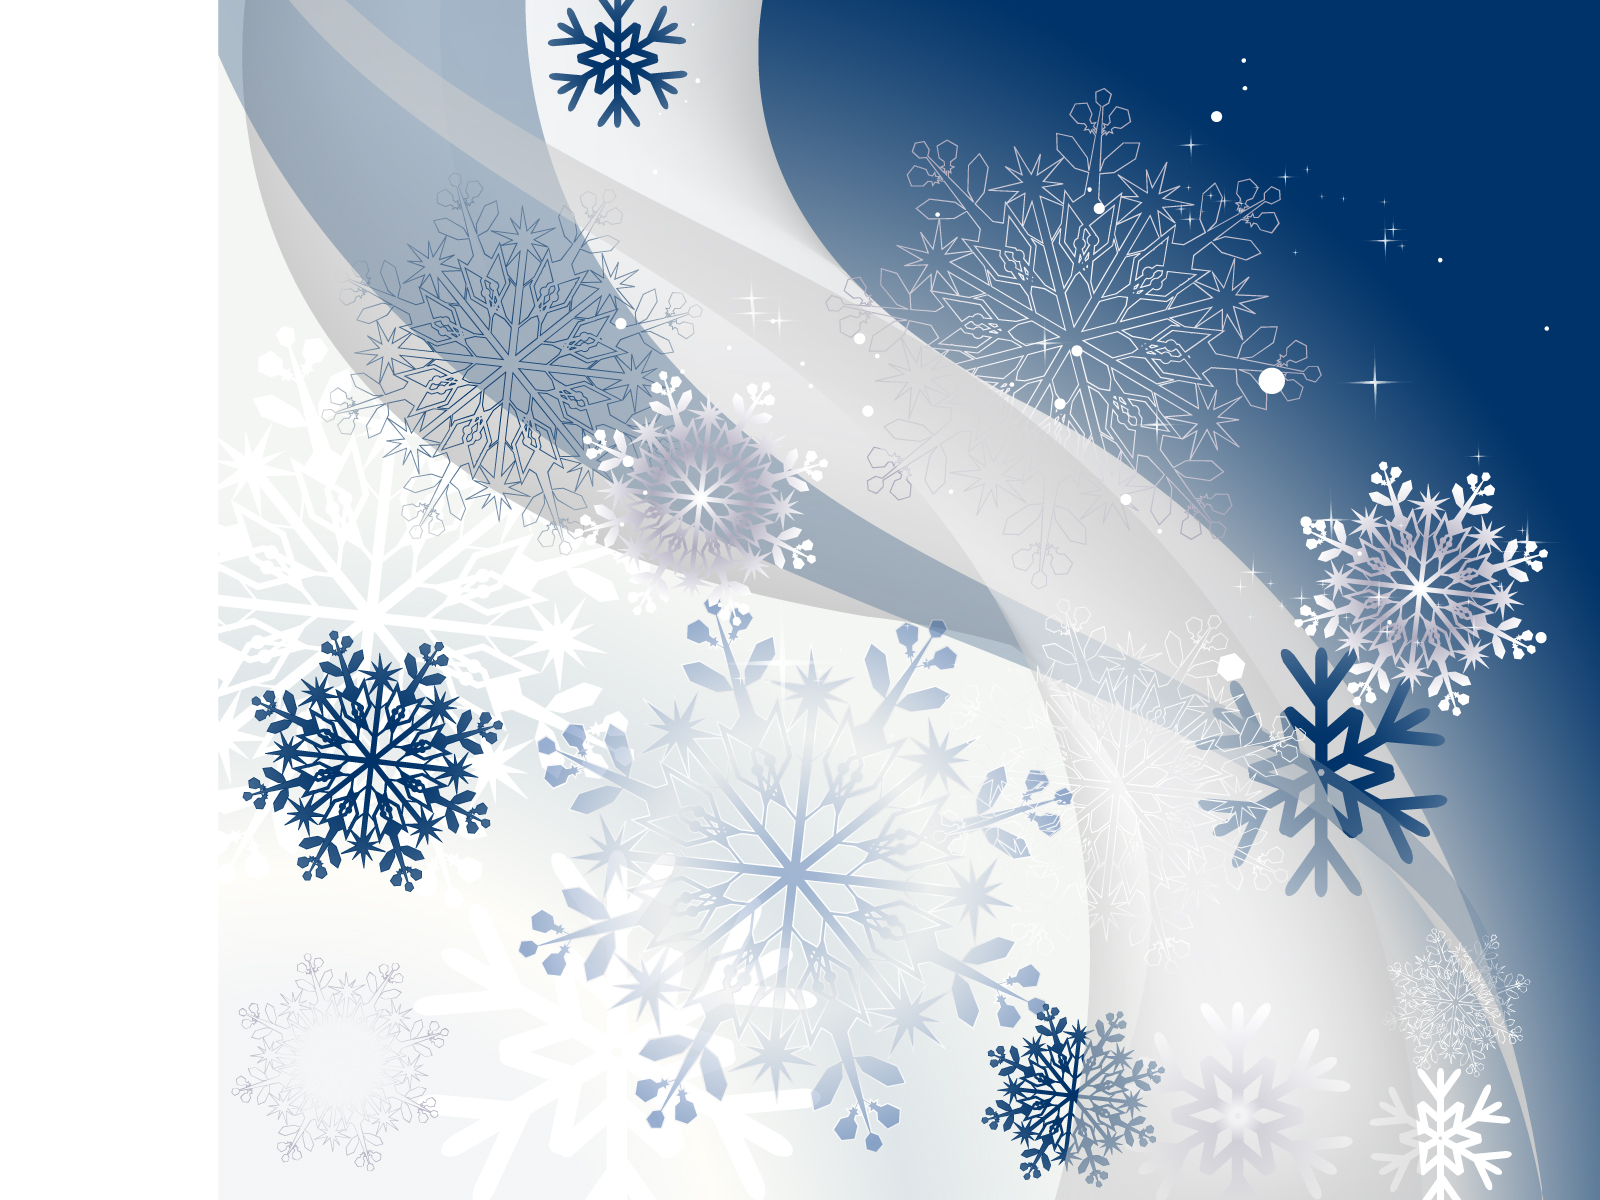 Winter Background with Snowflakes PPT Backgrounds